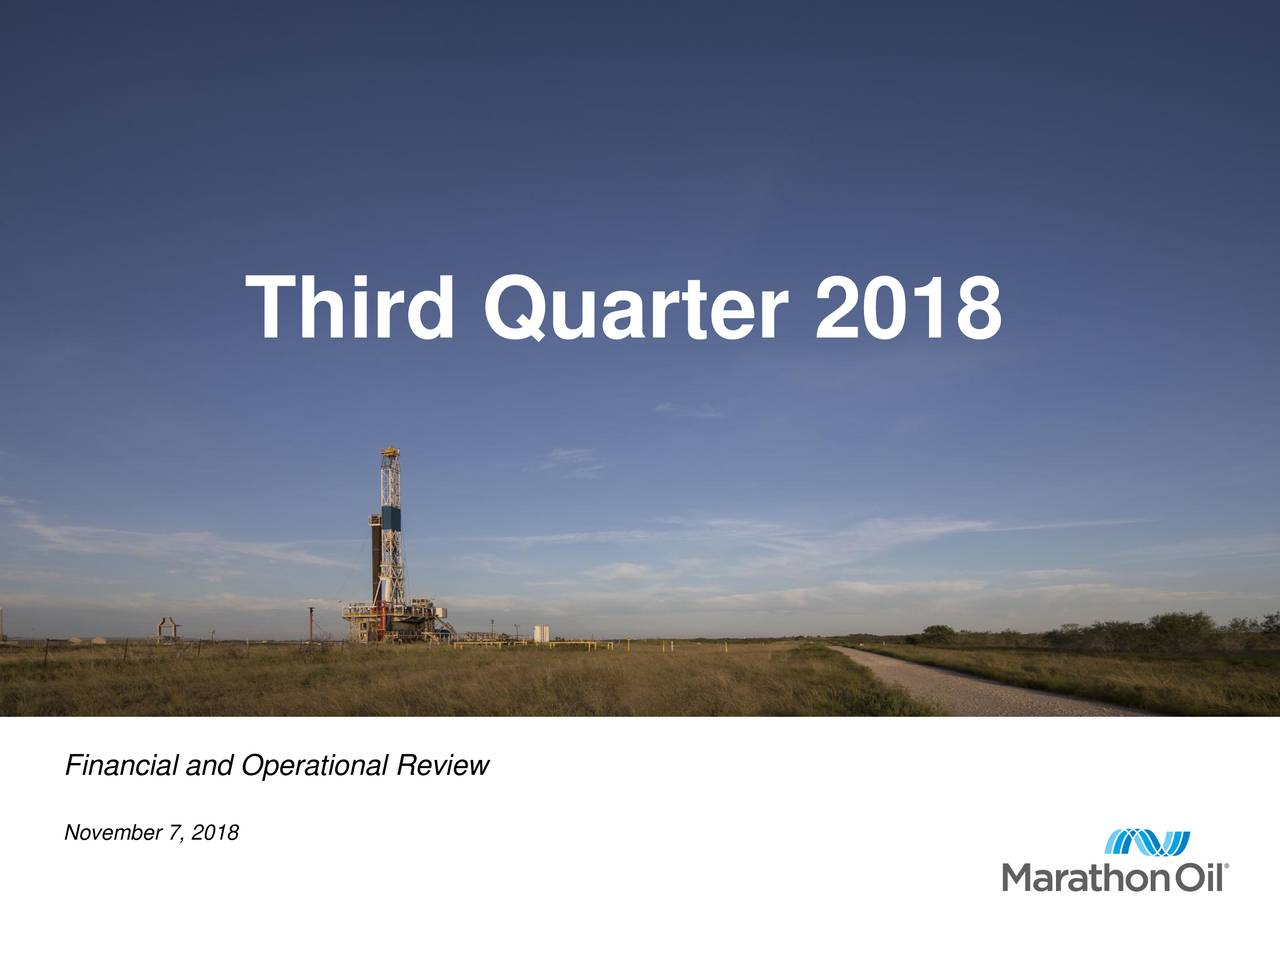 Financial and Operational Review November 7, 2018